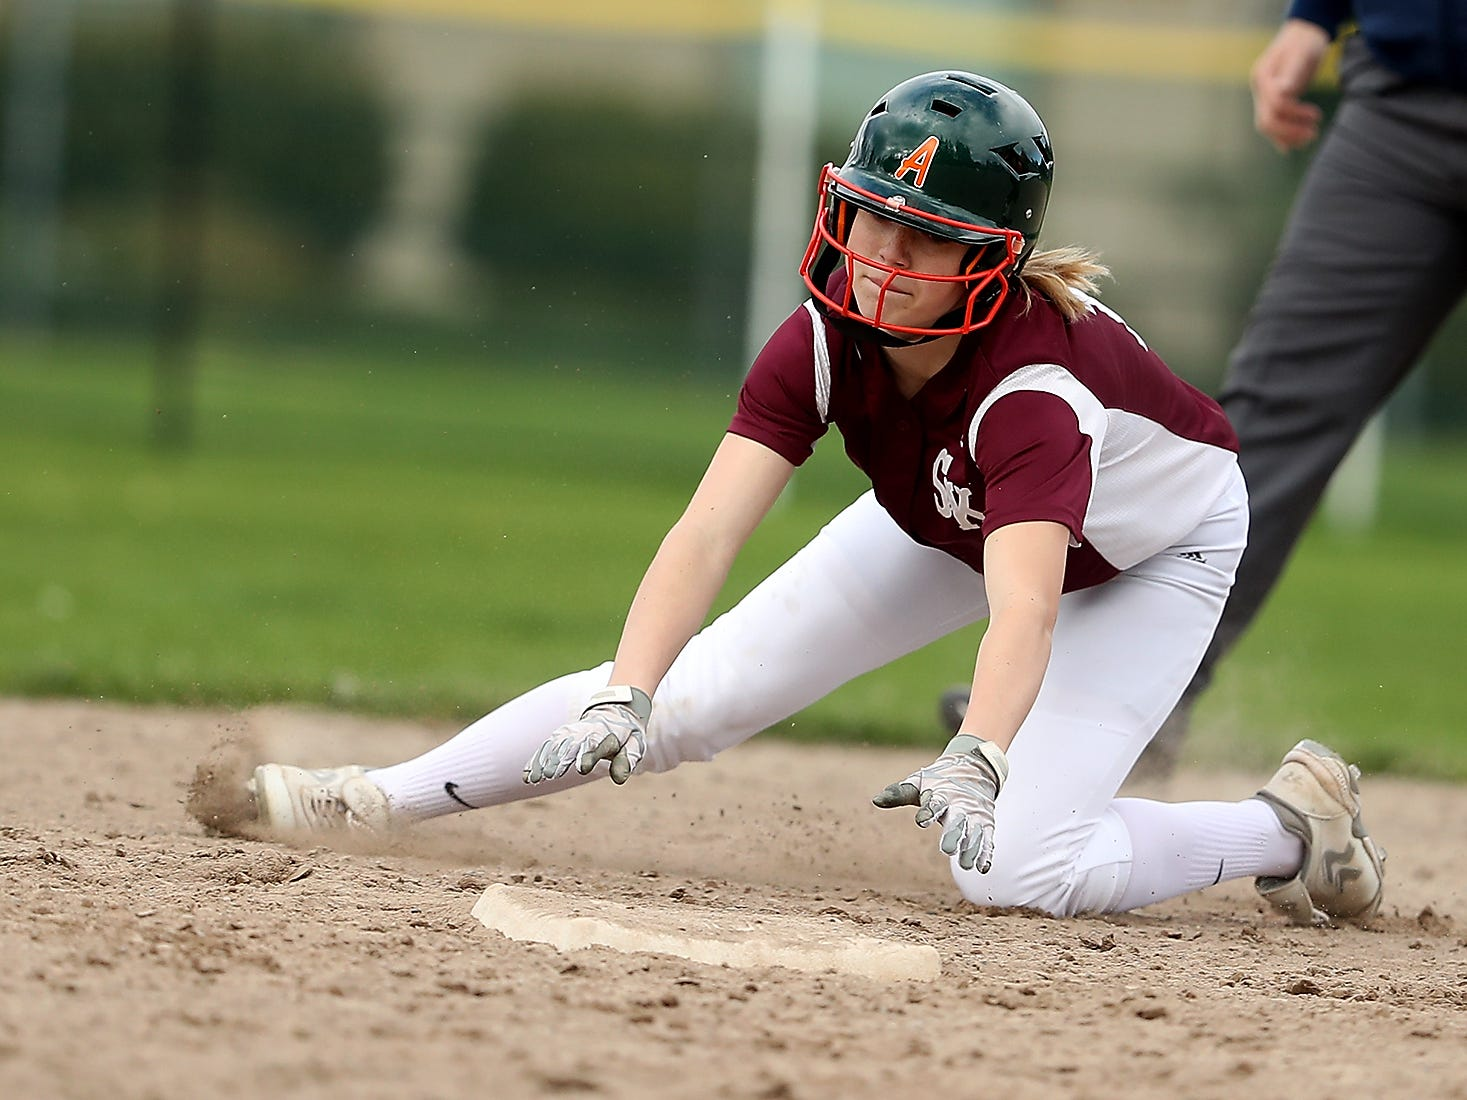 South Kitsap's Marisol Bergstrom steals second as a throw goes awry at Linder Field in Silverdale on Tuesday, April 23, 2019.